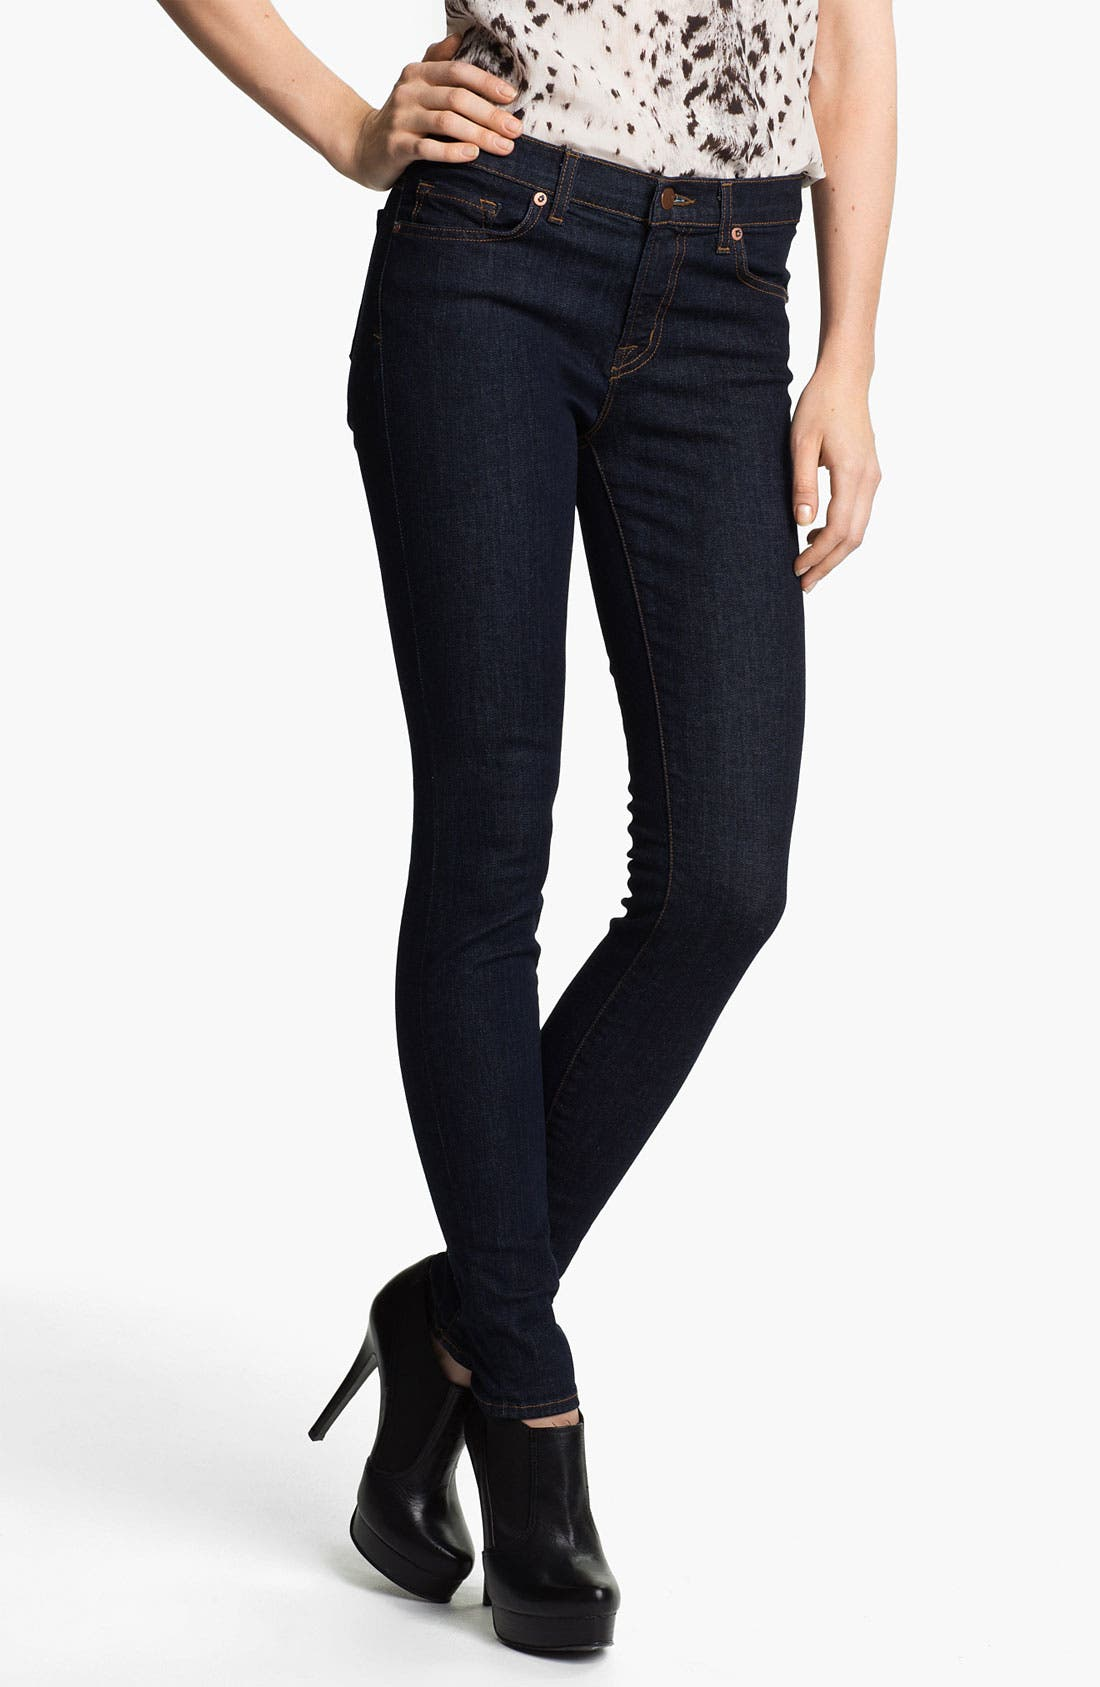 Alternate Image 1 Selected - J Brand '811' Mid-Rise Skinny Jeans (Pure)